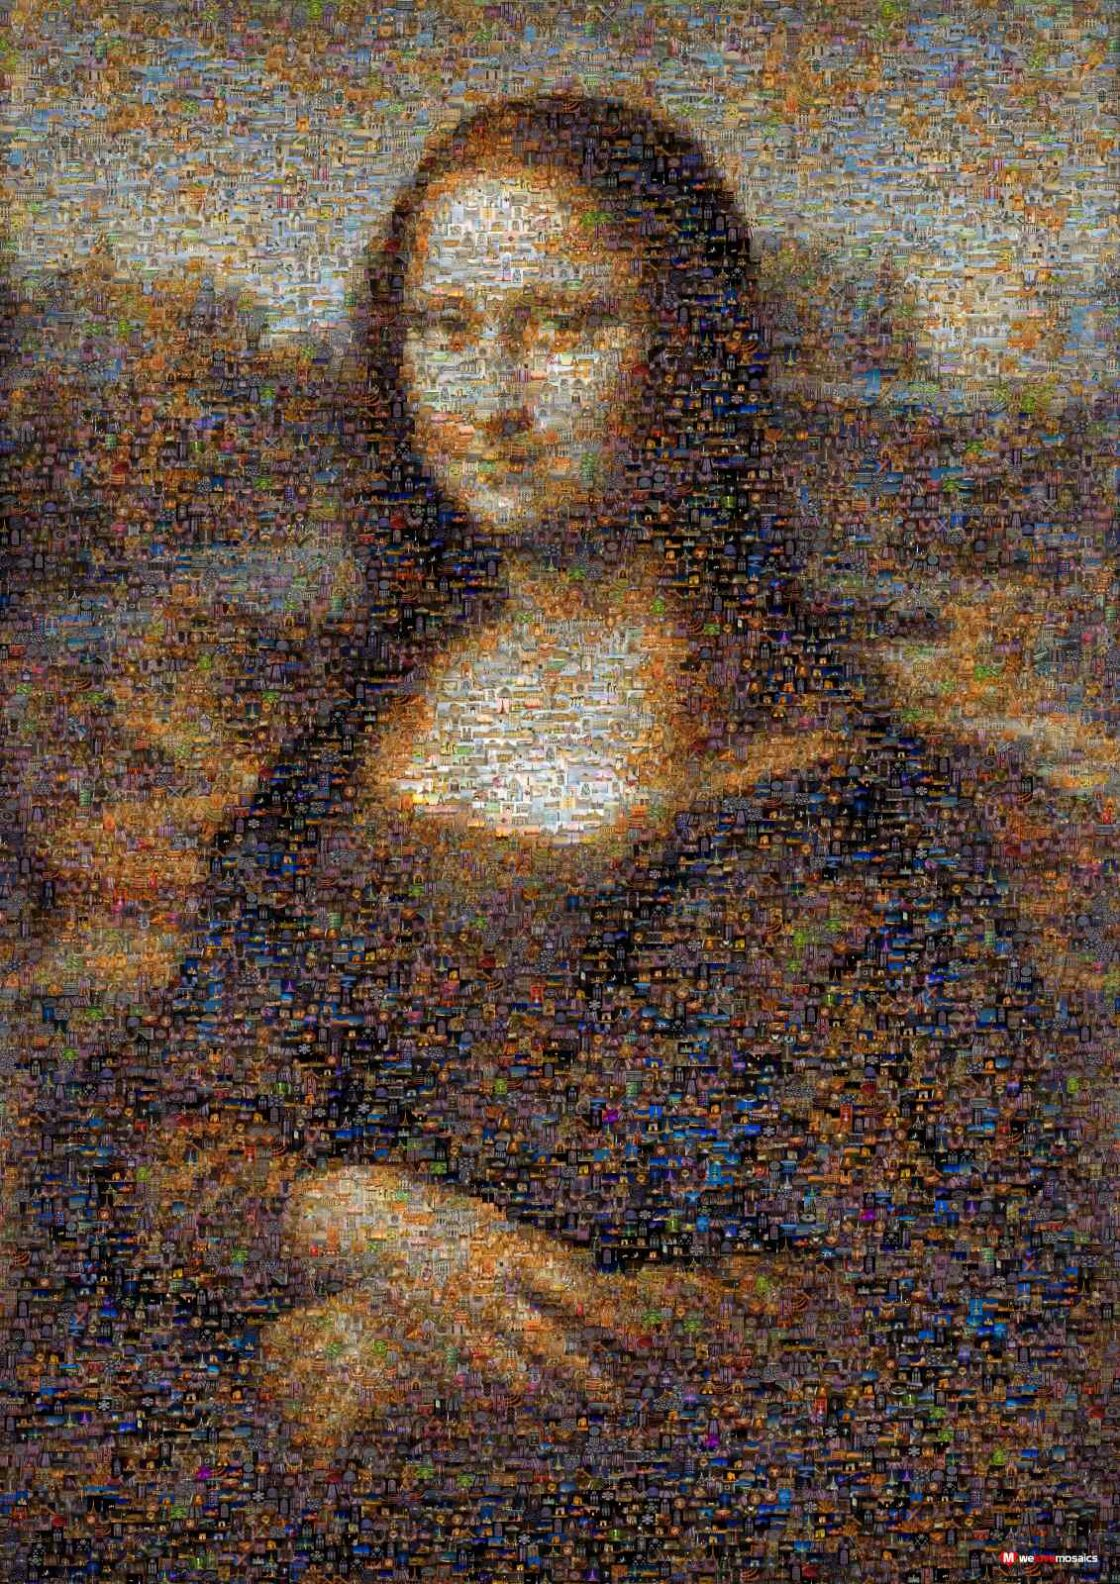 Is also called Portrait of Lisa Gherardini.